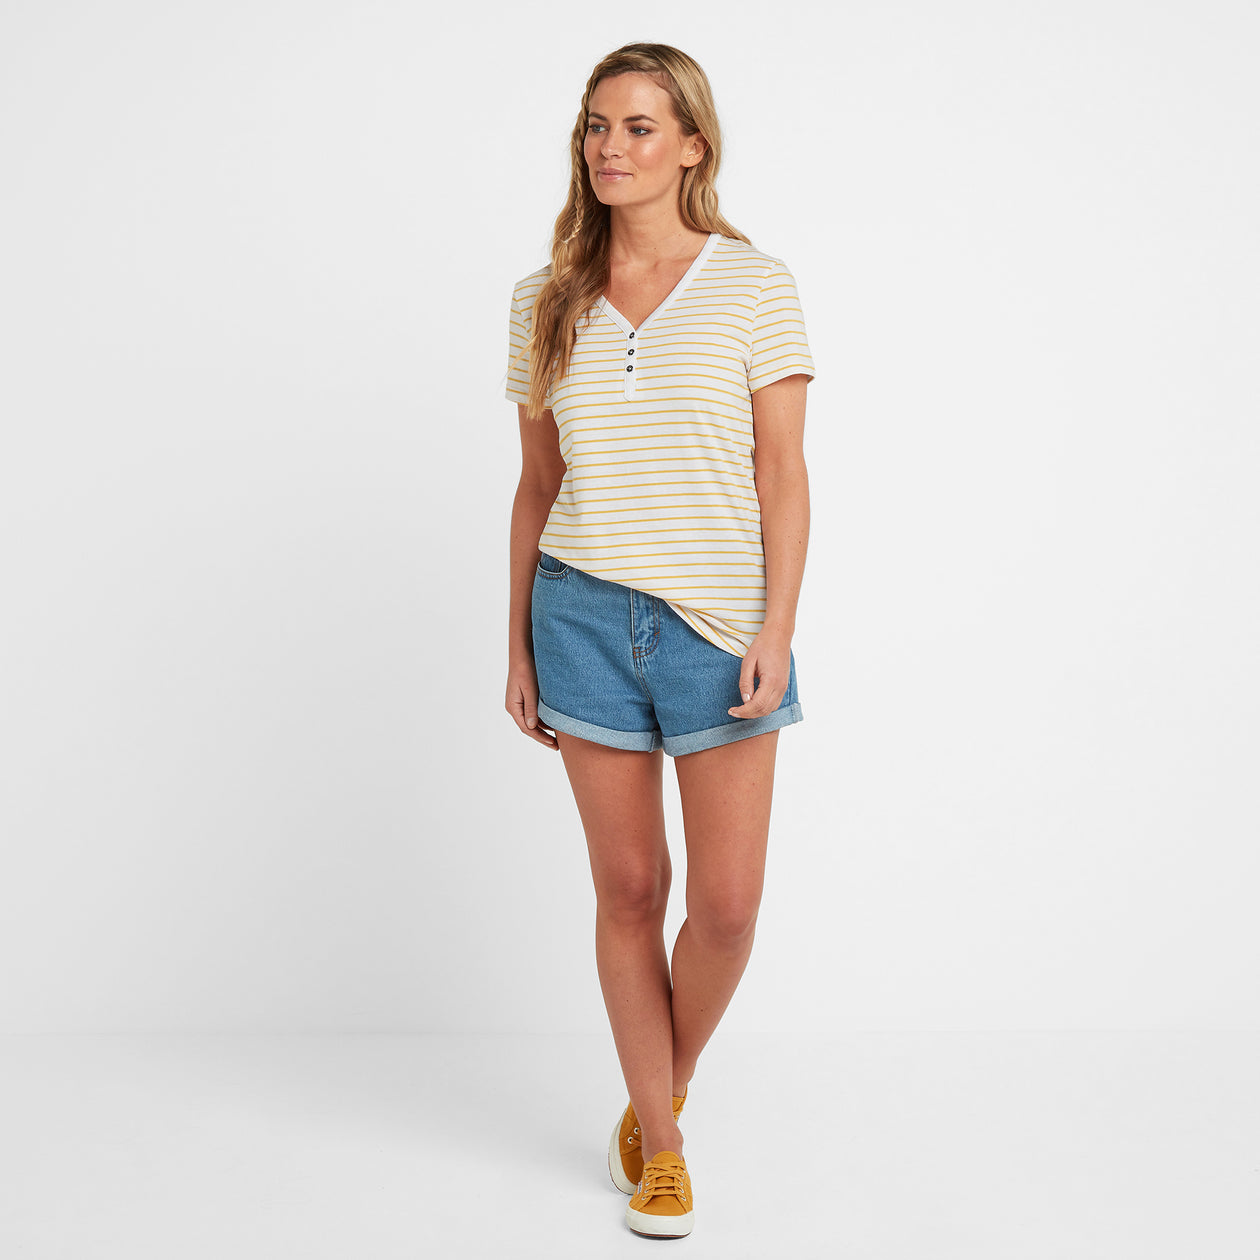 Kaye Womens Stripe Y-Neck T-Shirt - Sun Yellow image 4